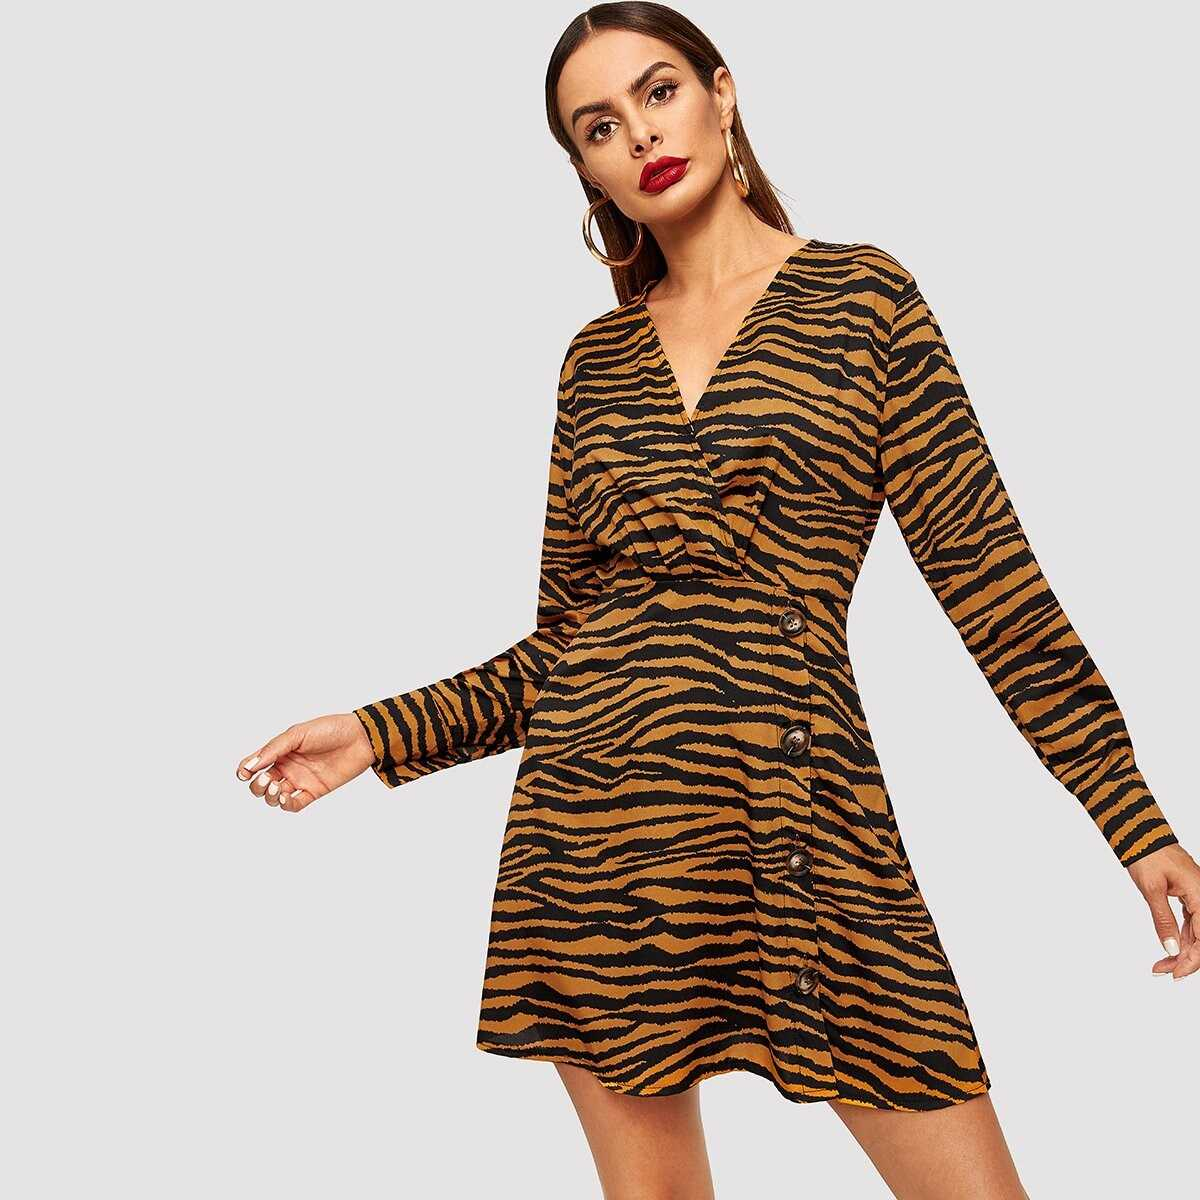 Zebra Print Single Breasted Wrap Dress - Shein - GOOFASH